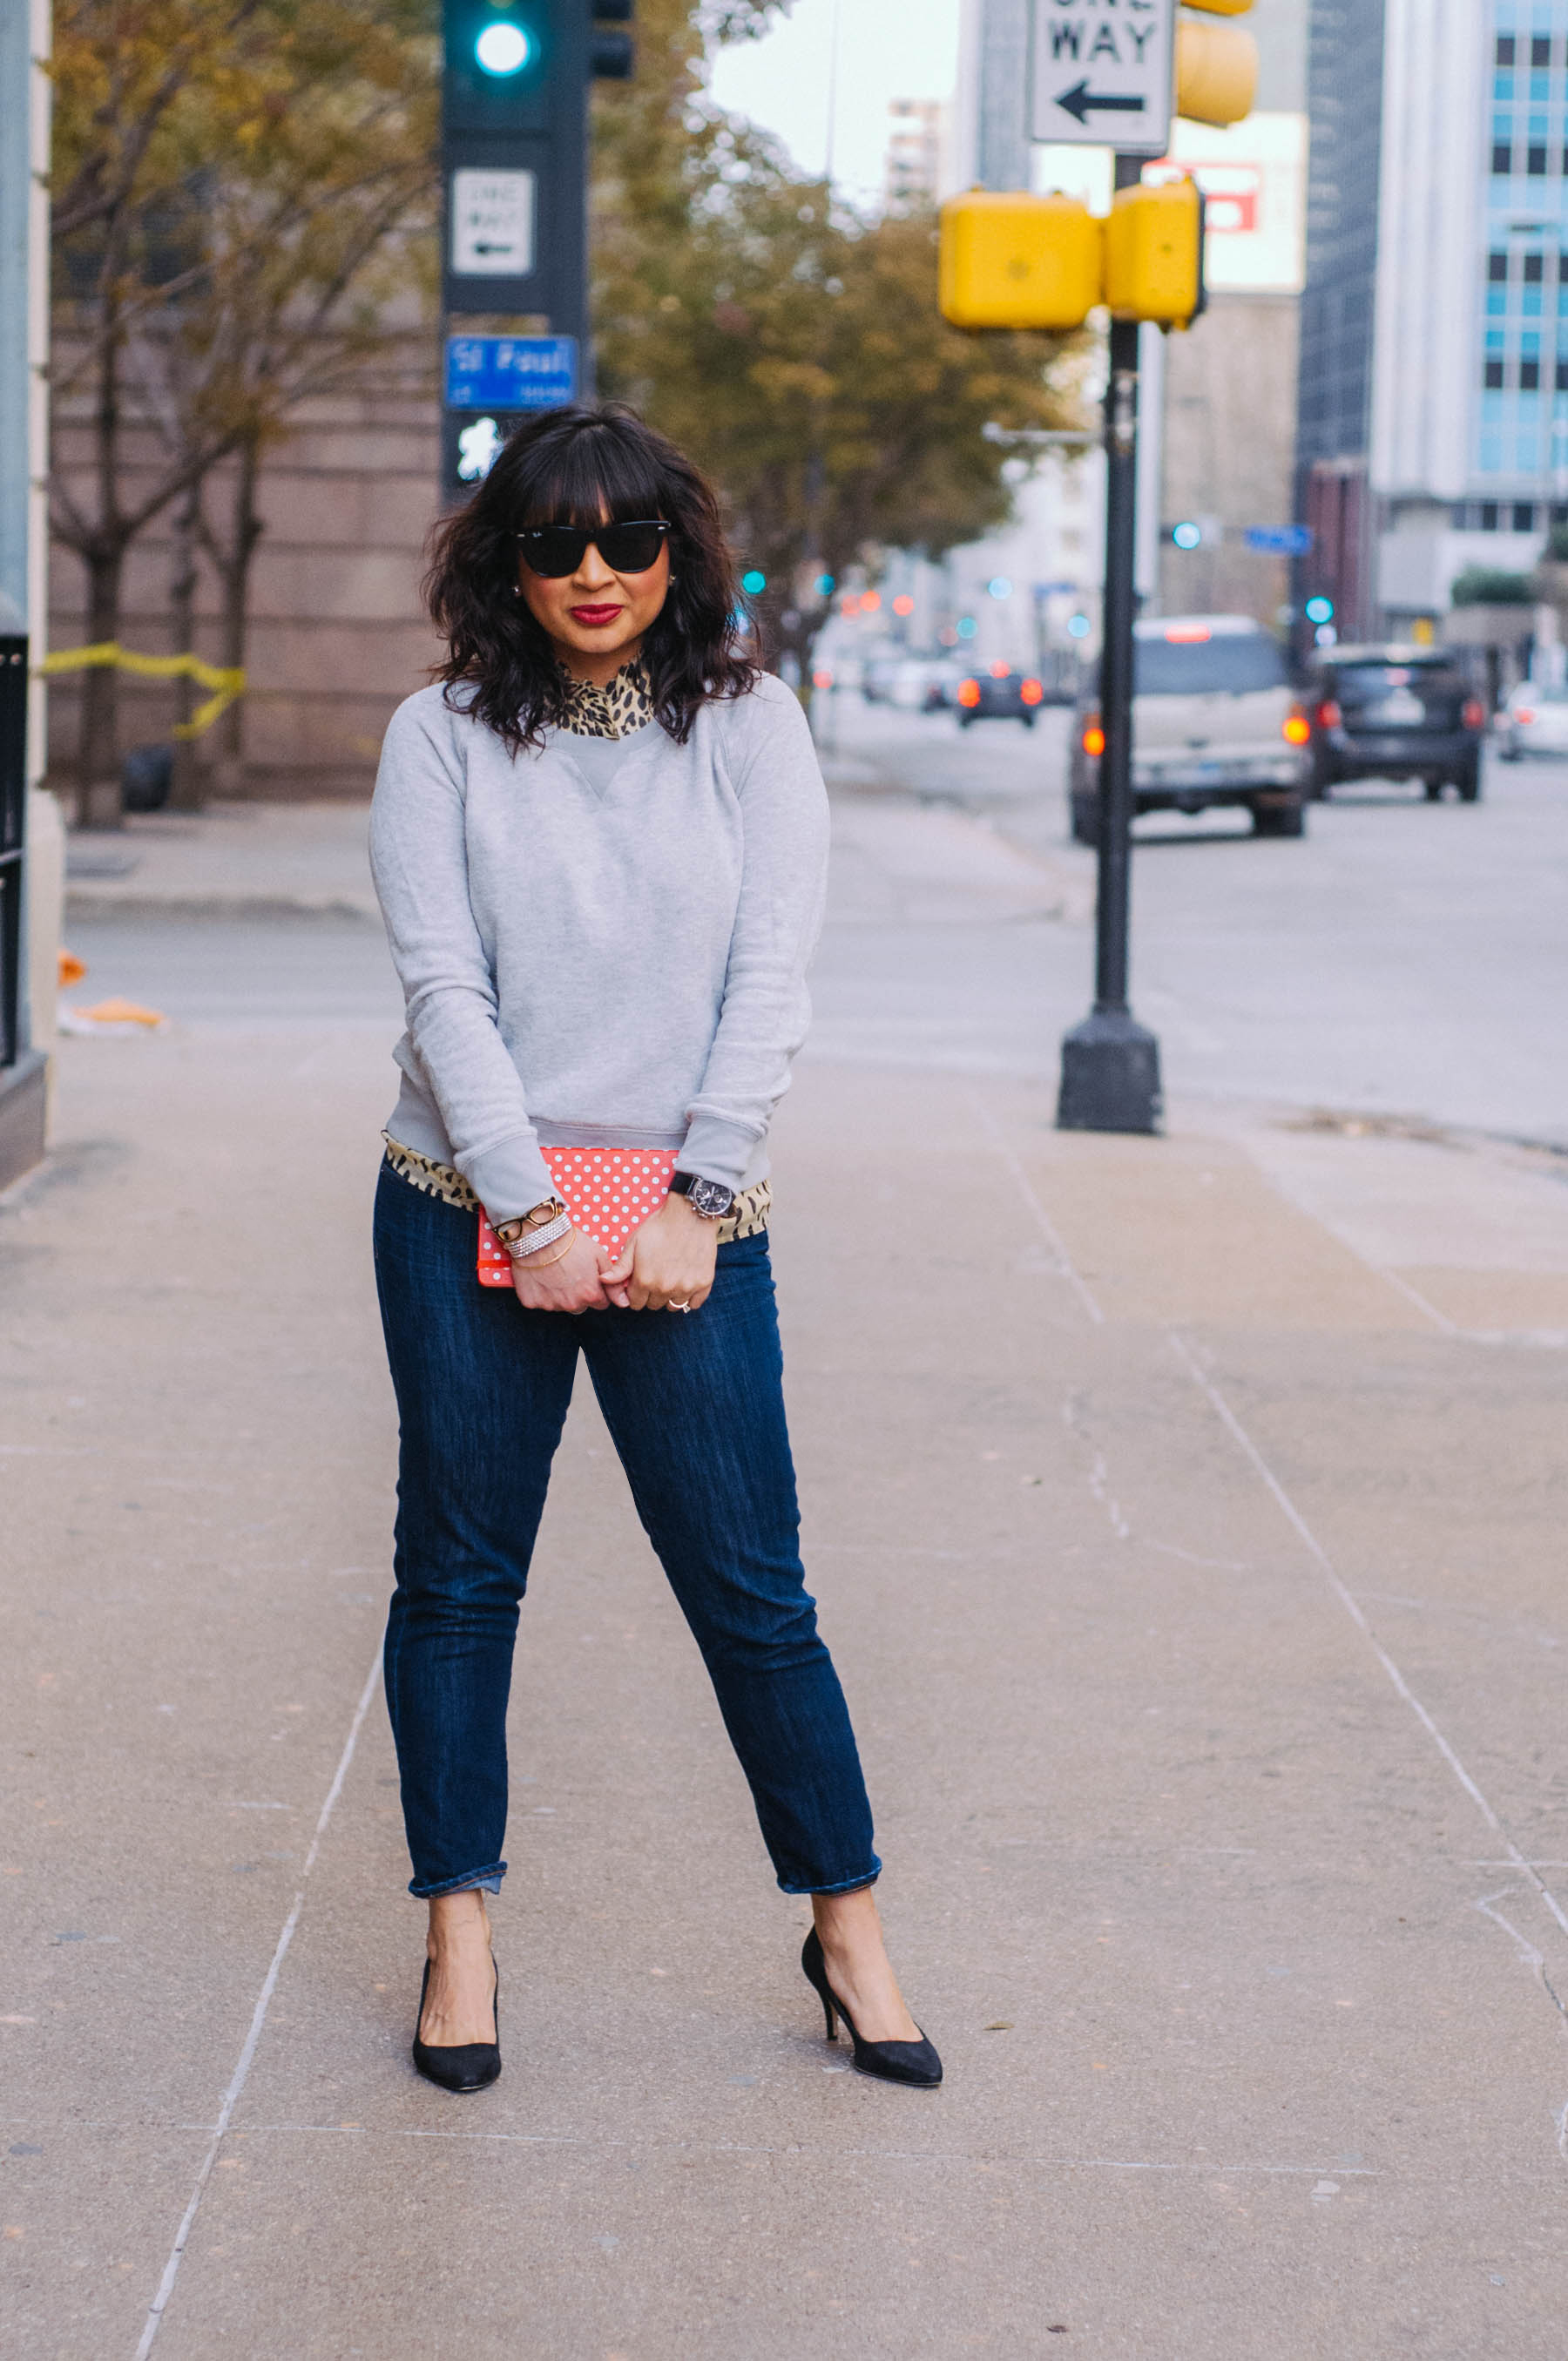 Sweater:  Mossimo  | Blouse:  J.Crew  | Jeans:  J.Crew (Toothpick)  | Shoes: H&M (similar  here ) | Sunglasses:  RayBan  | Jewelry:  Cara ,  Kate Spade , Heirloom | Watch: Fossil (old, but similar  here )